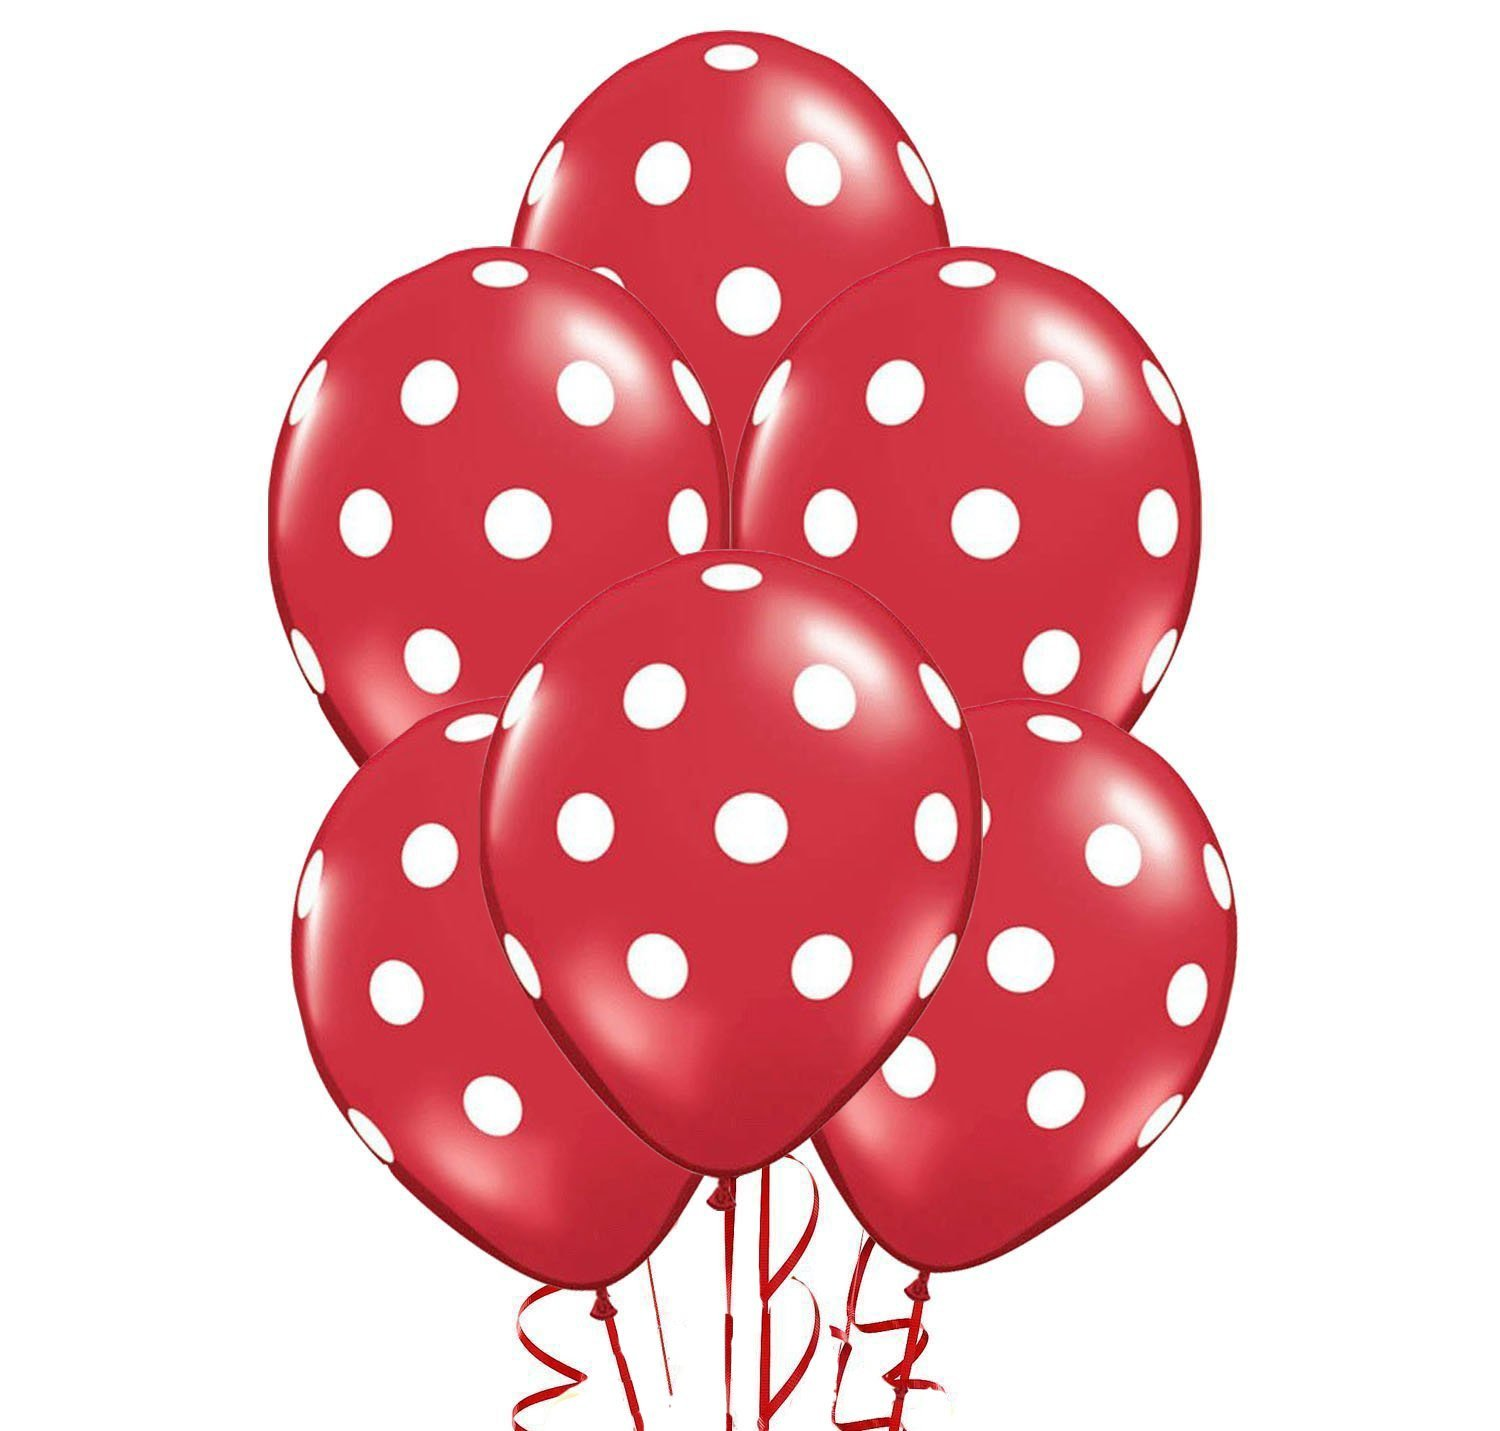 Polka Dot Balloons 11in Premium Red with All-Over print White Dots Pkg/100